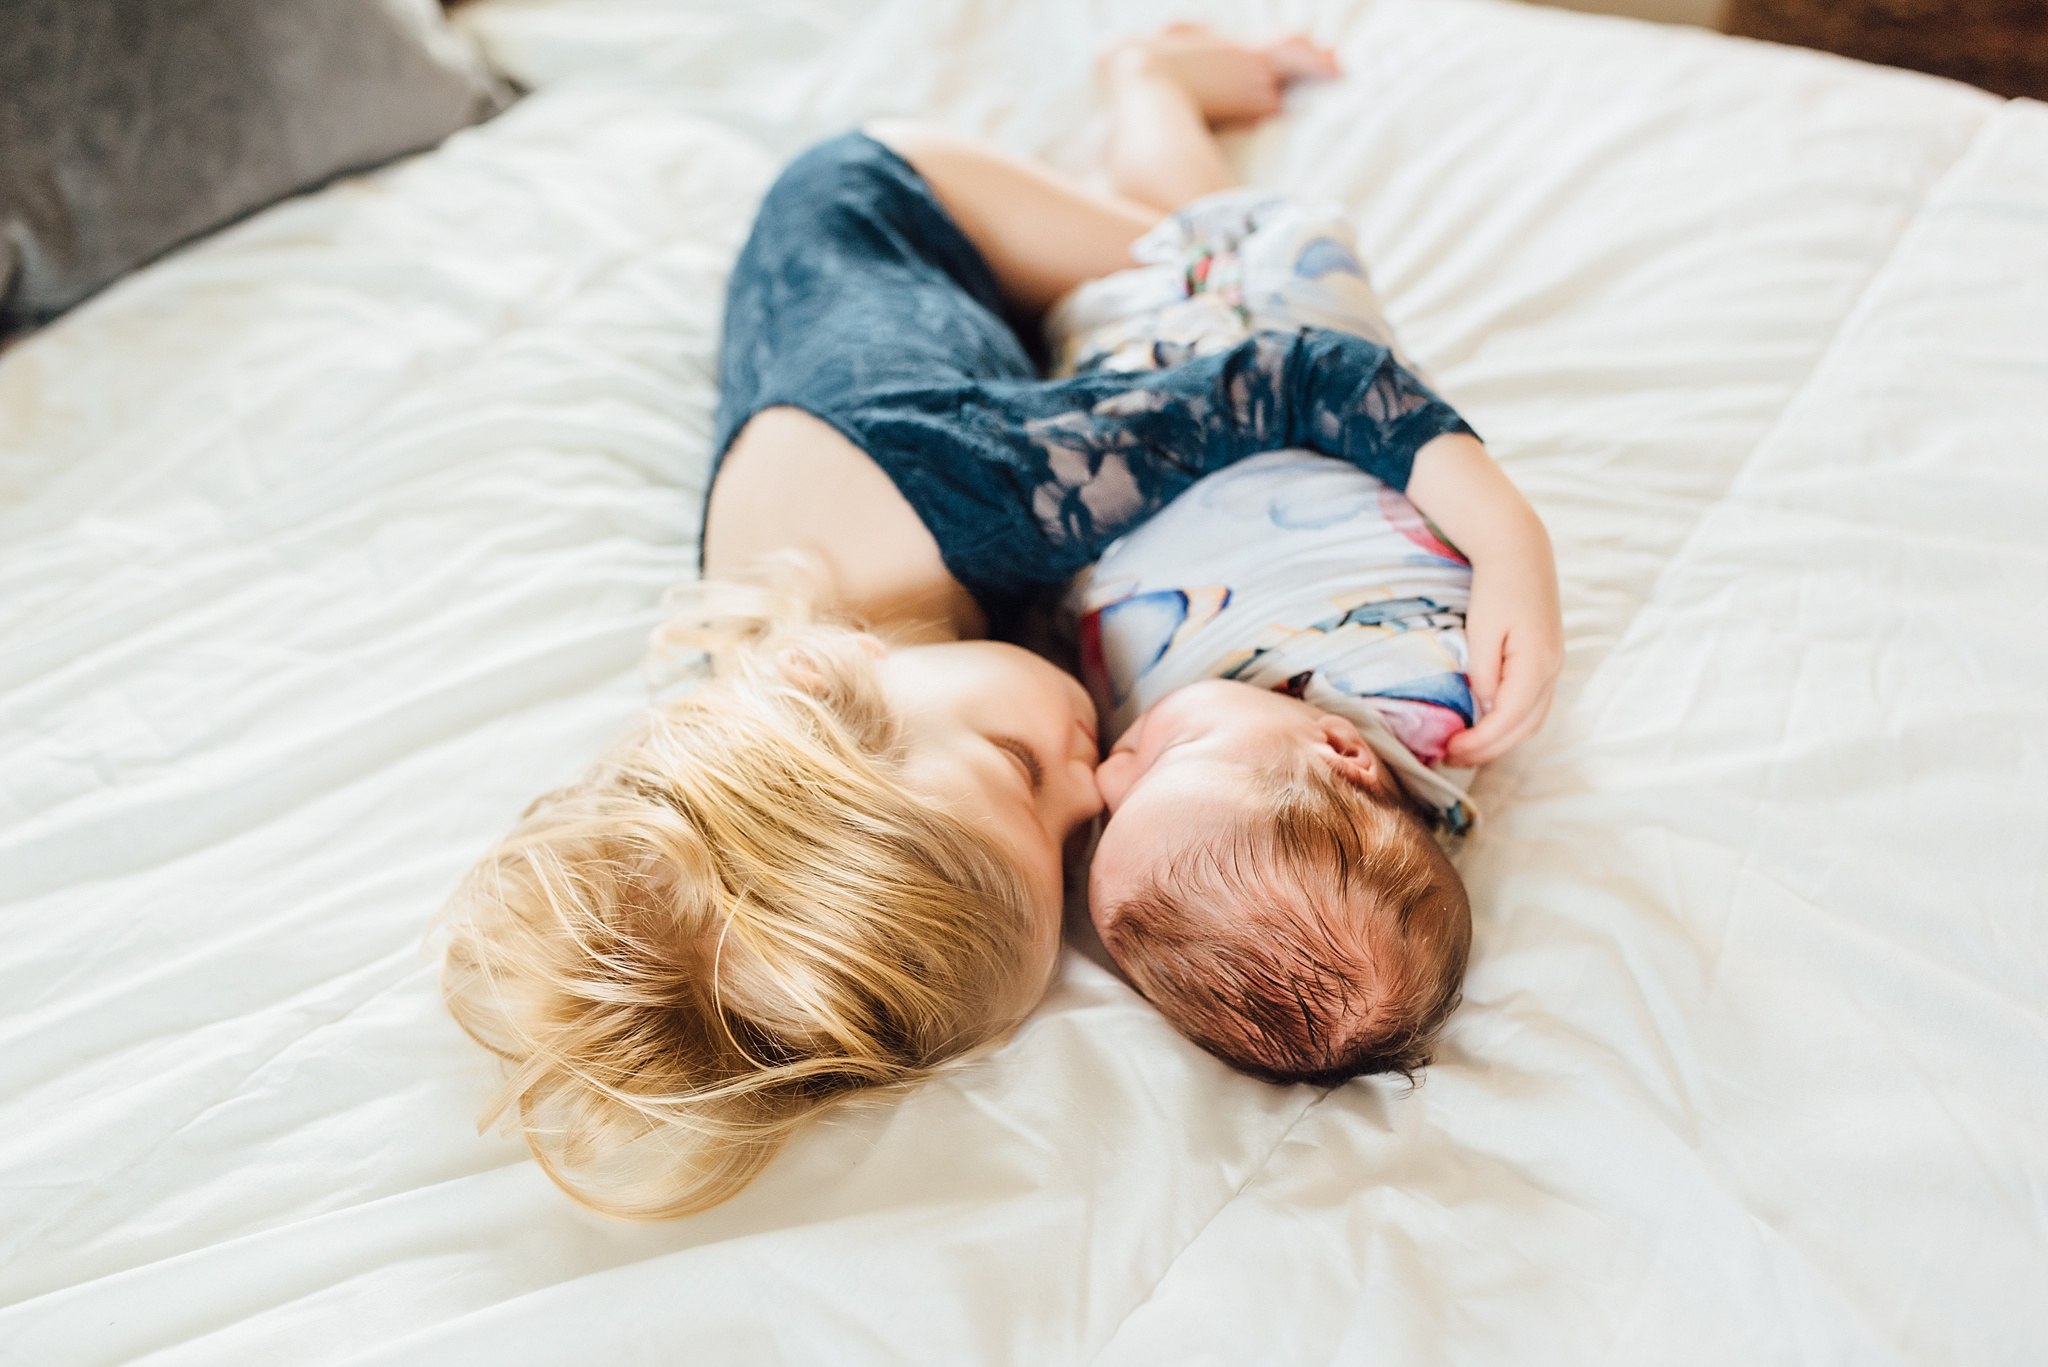 In-Home-Lifestyle-Newborn-Photographer-Pittsburgh-Rachel-Rossetti-Photography-What-to-clean-how-to-prepare_0066.jpg